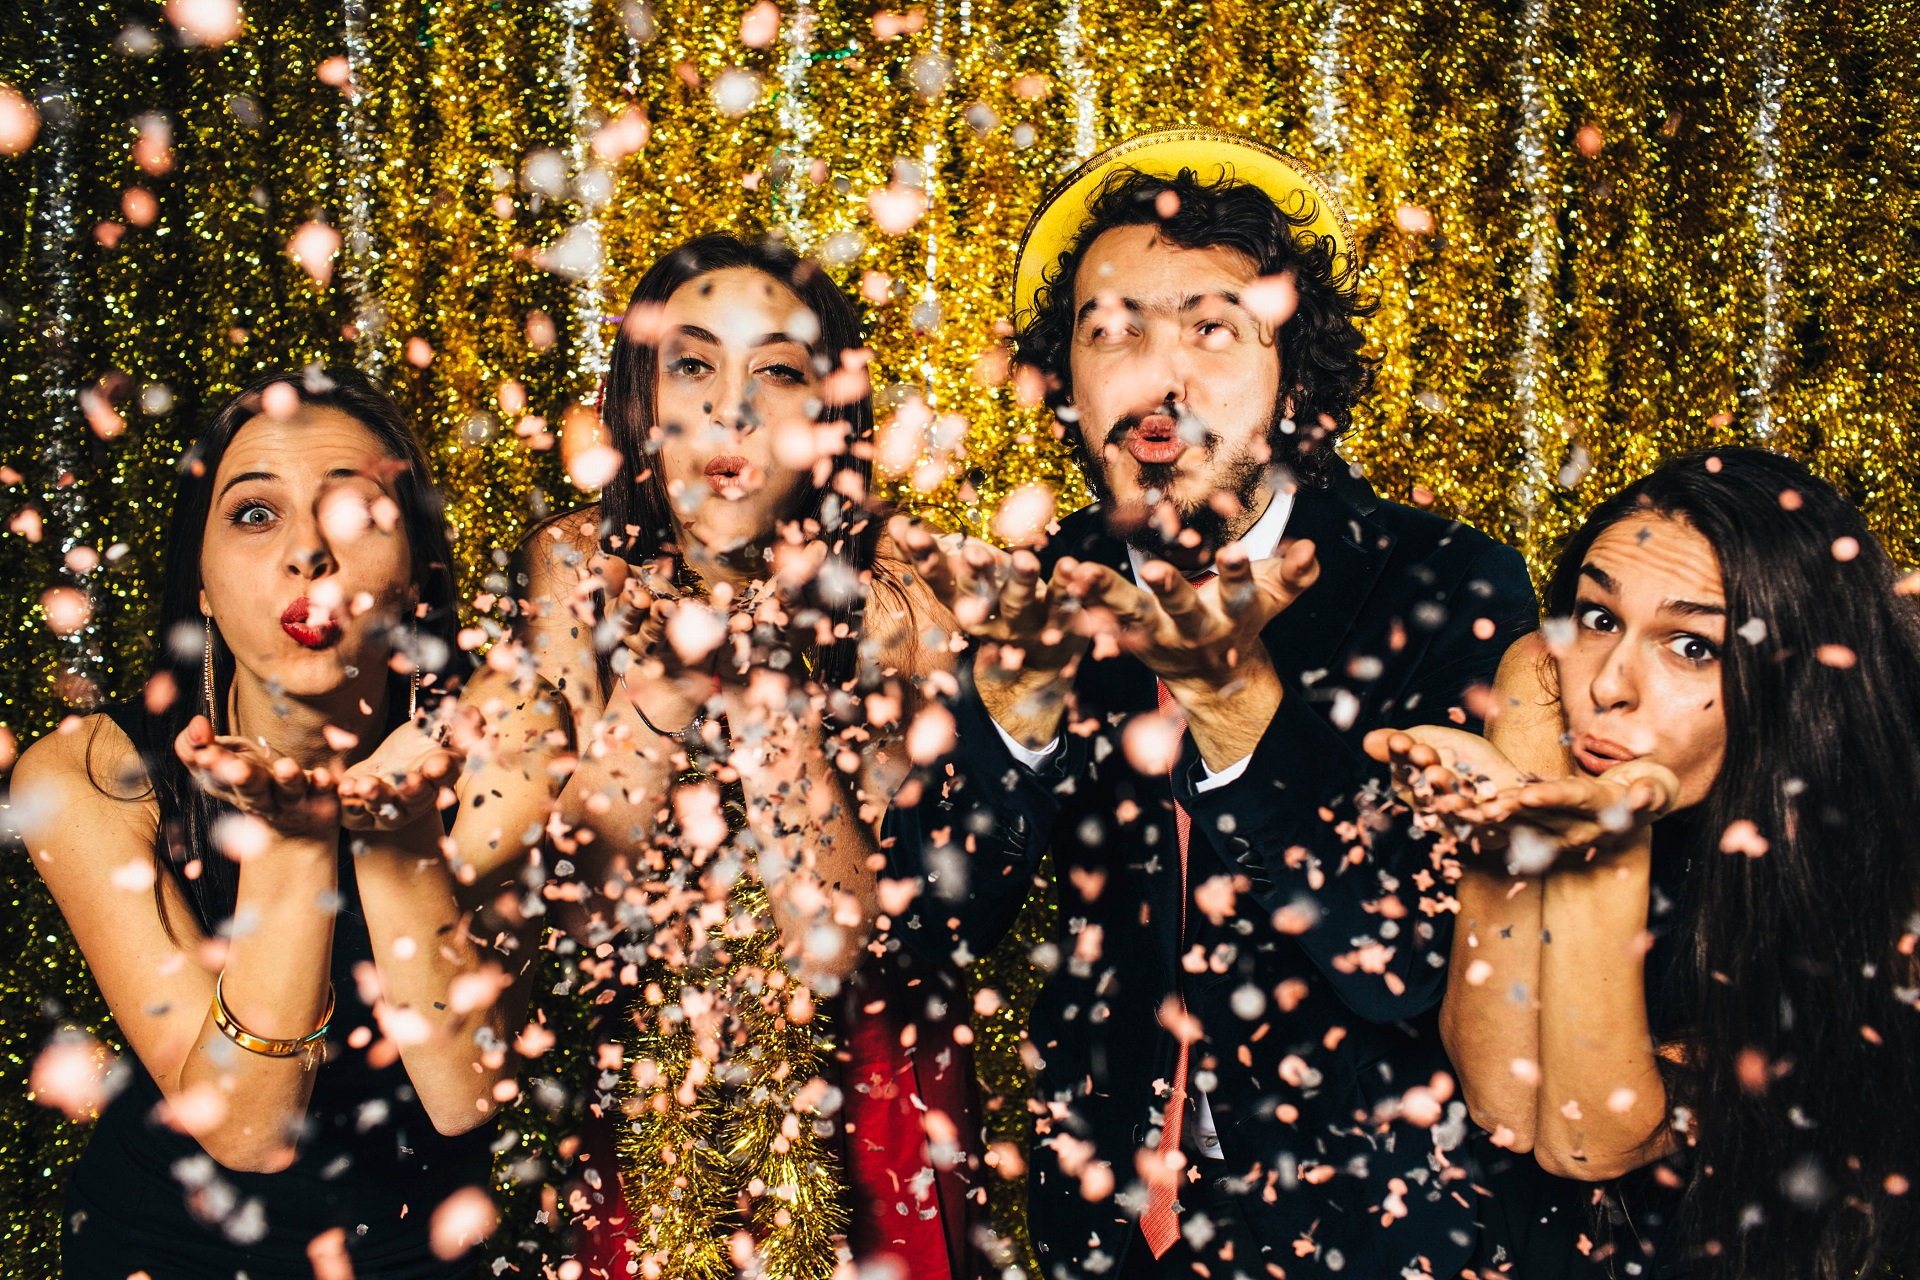 Friends blowing confetti on New Year's Eve - 2016.